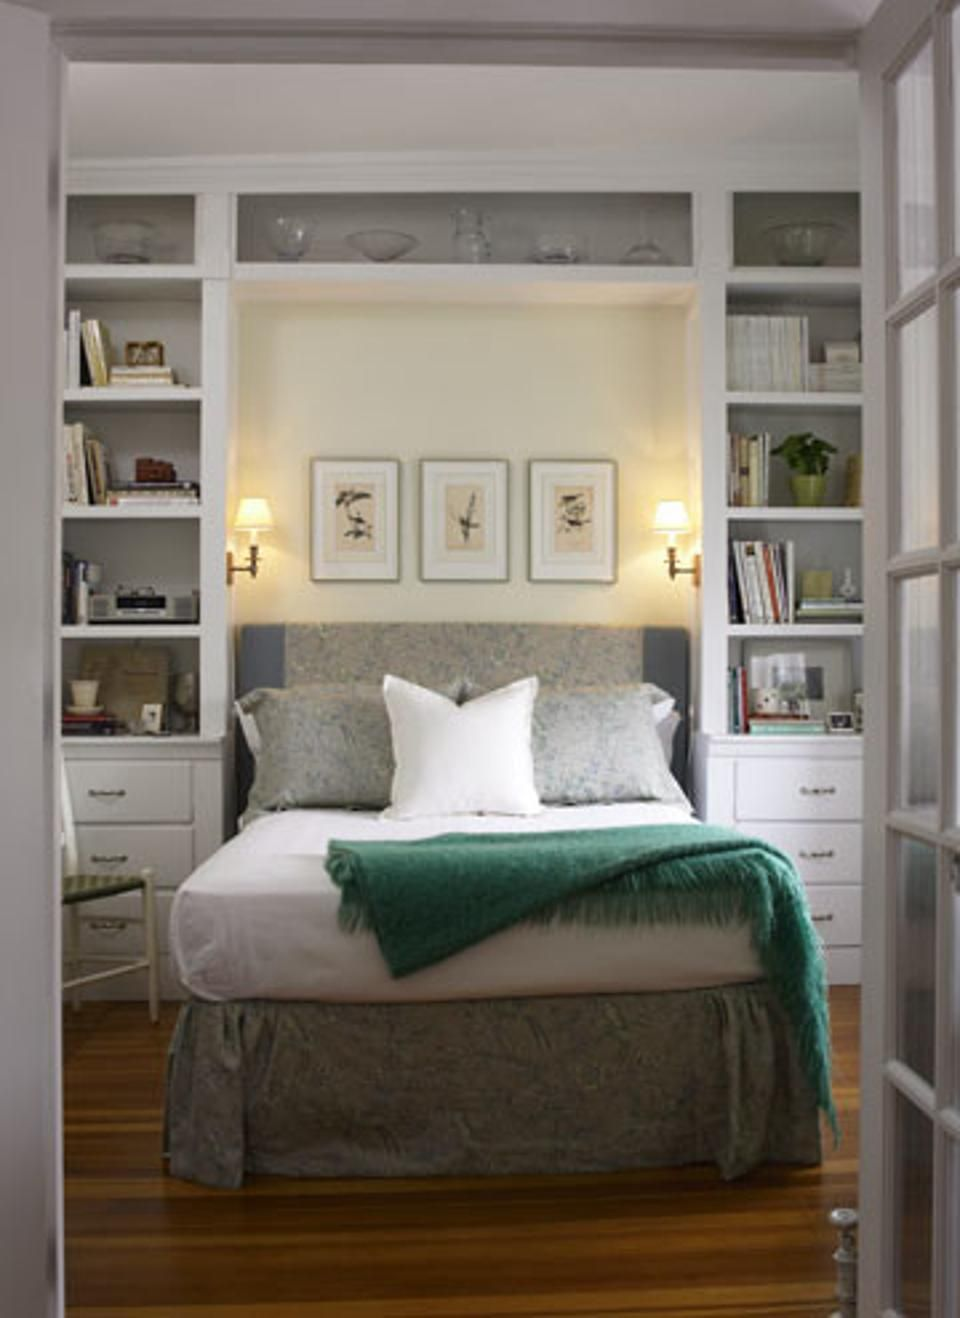 10 tips to make a small bedroom look great for the home 19911 | 5543500766e078ce34a3a0f2597575cc